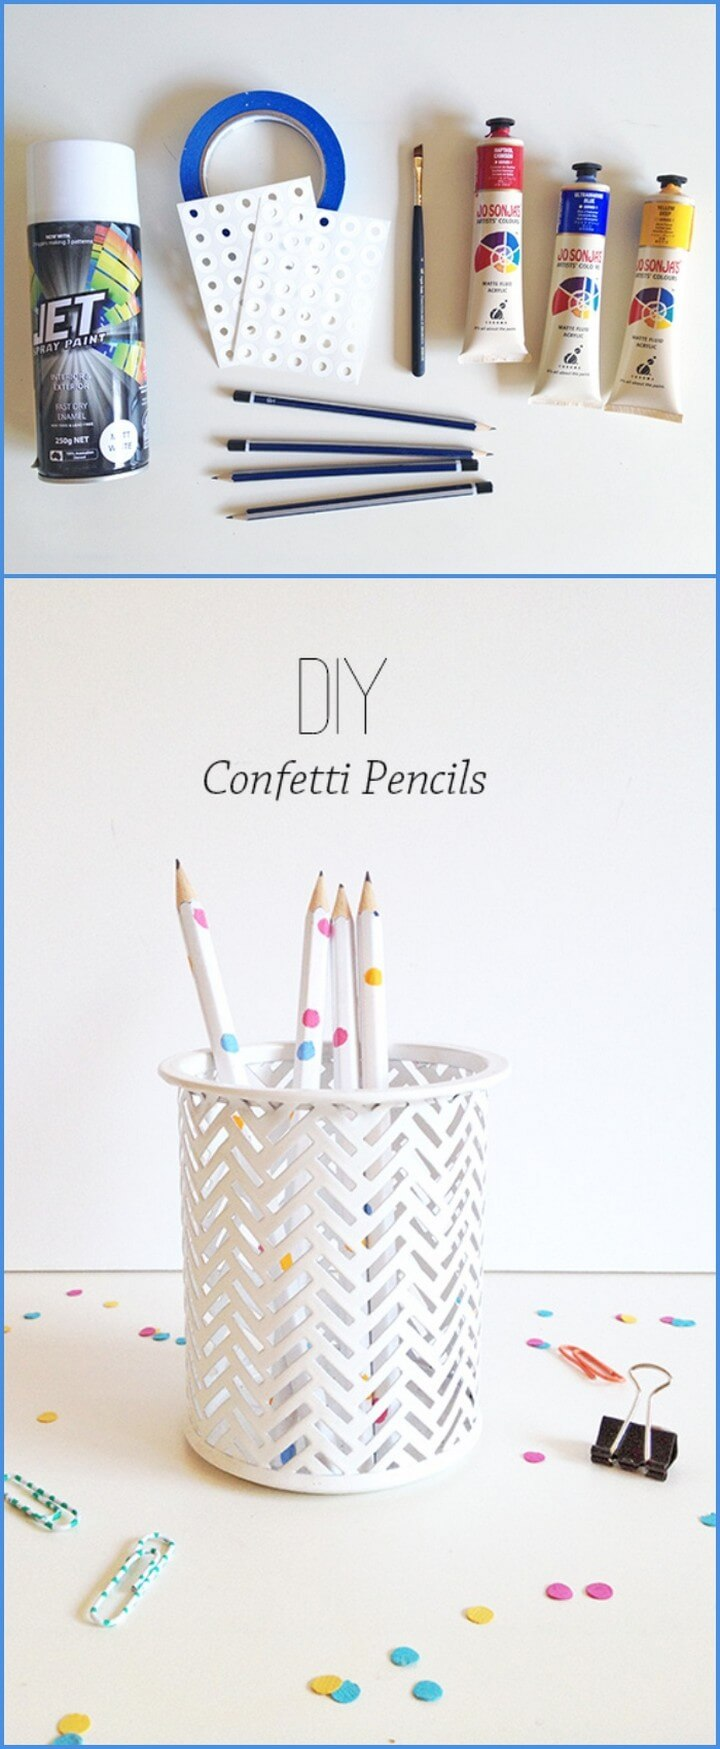 10 DIY Easy Crafts to Make And Sell Ideas For You